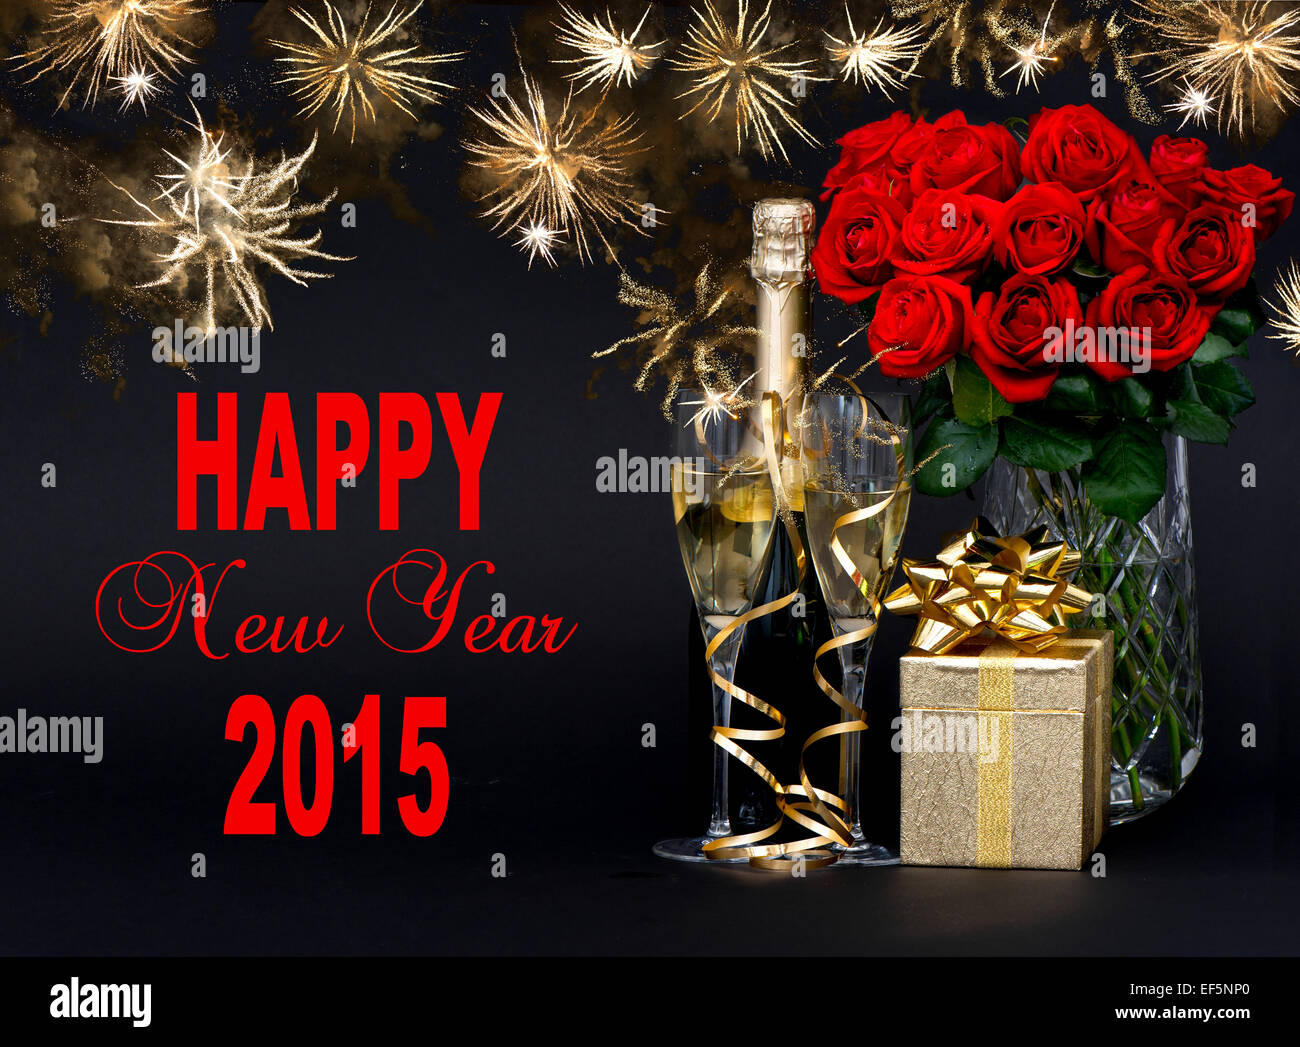 Happy New Year 2015 Card Concept Red Roses Bottle Of Champagne